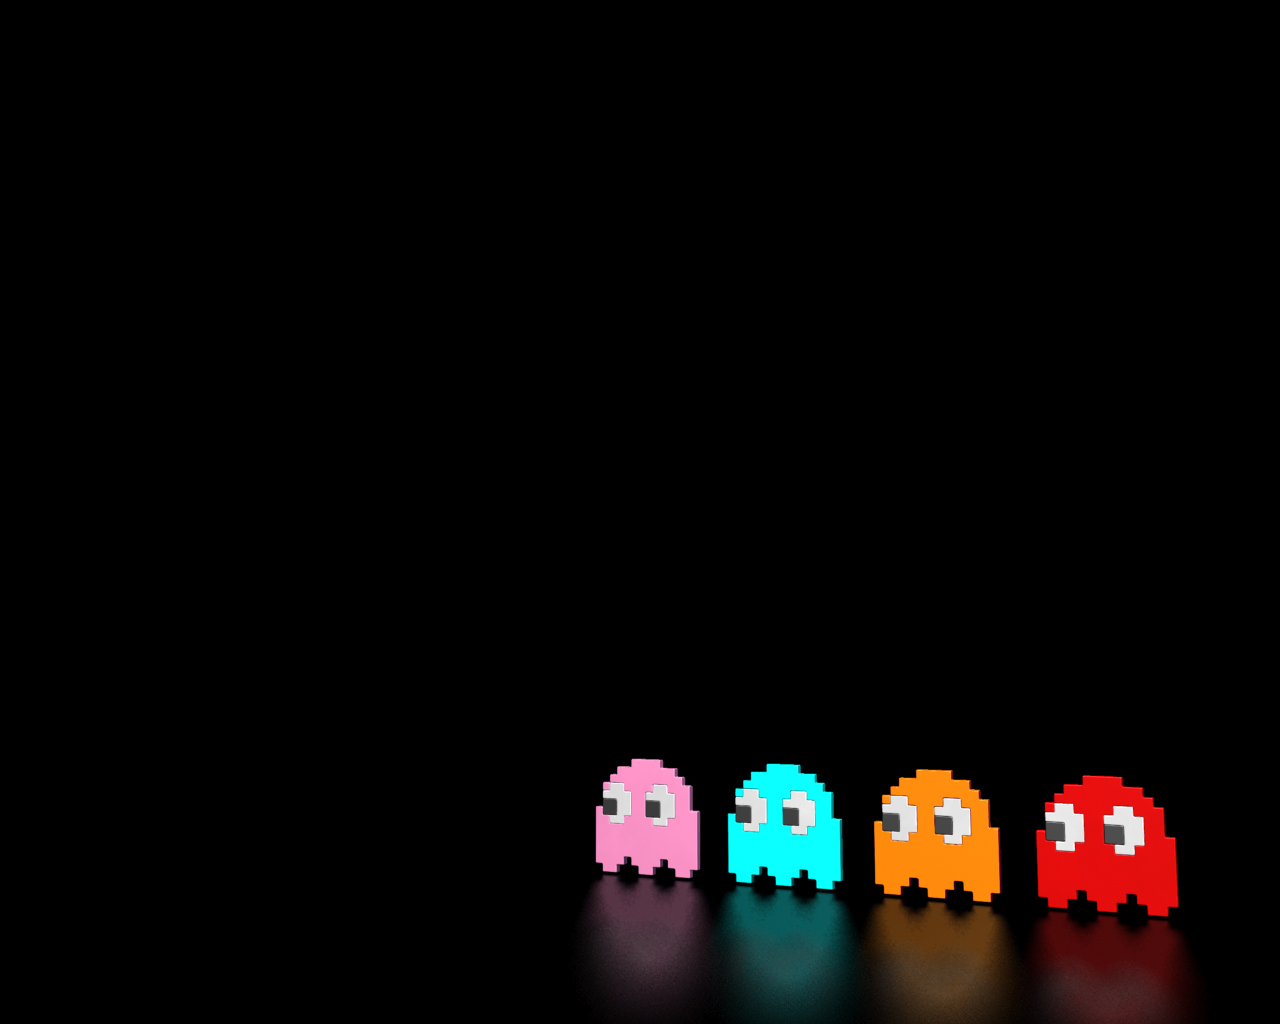 Video Game Gallery Wallpaper Avatars More 1280x1024